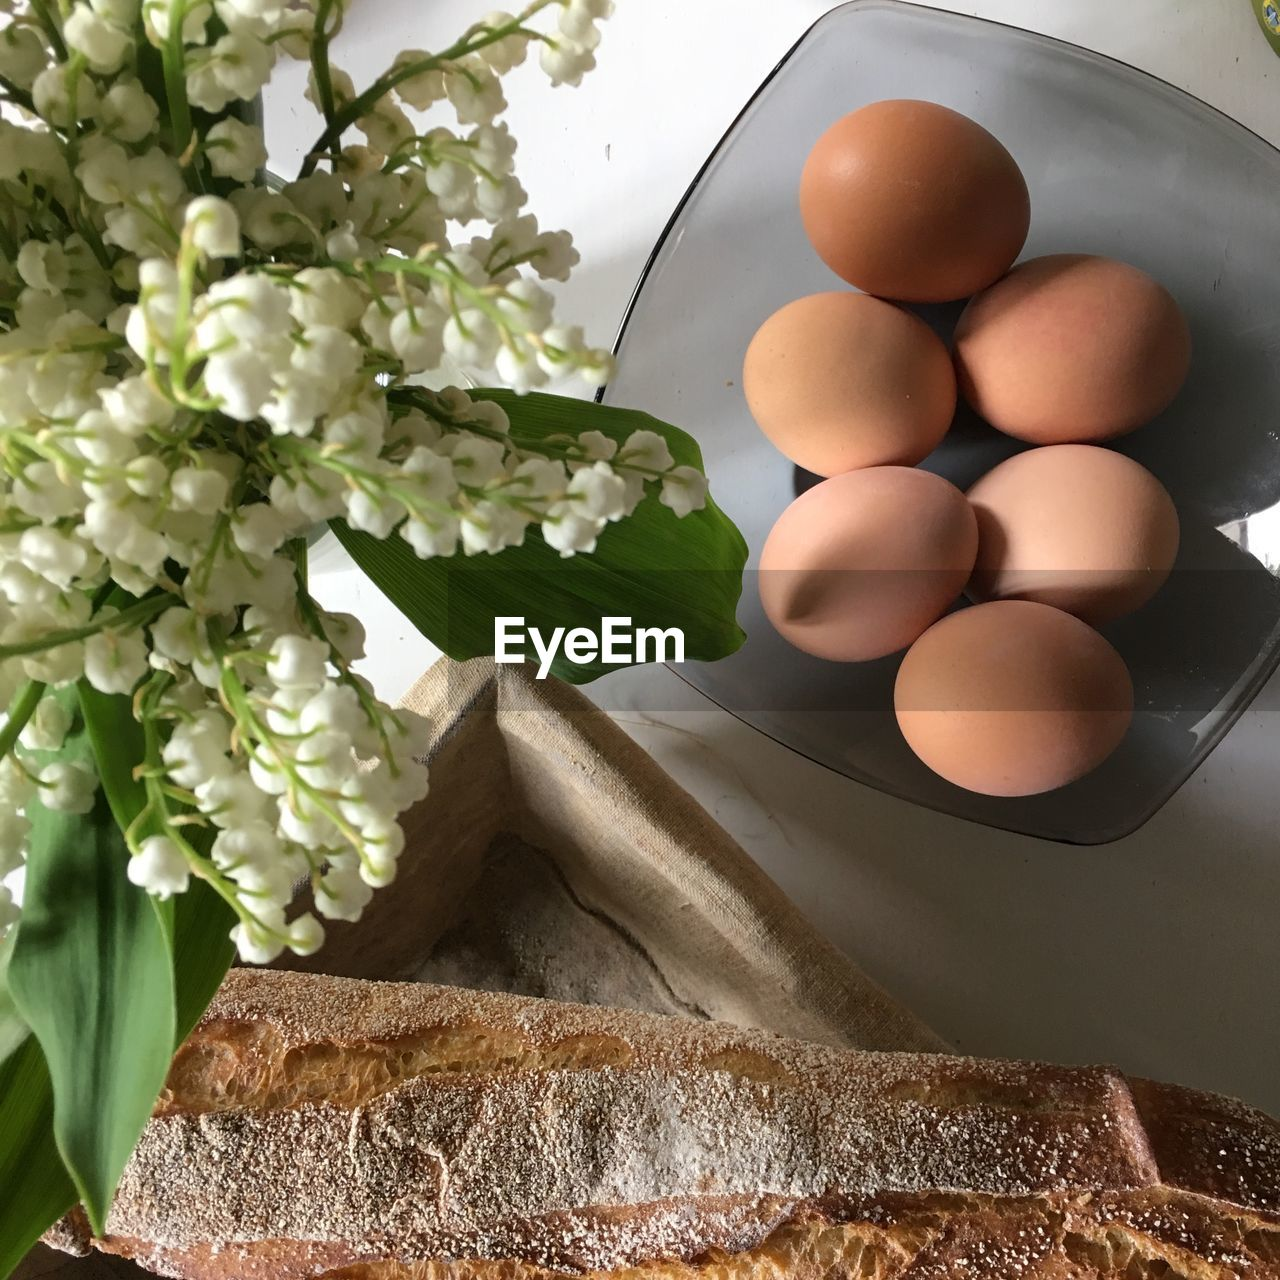 freshness, food, food and drink, healthy eating, no people, wellbeing, egg, plant, indoors, nature, still life, fragility, close-up, vulnerability, table, flowering plant, raw food, flower, brown, white color